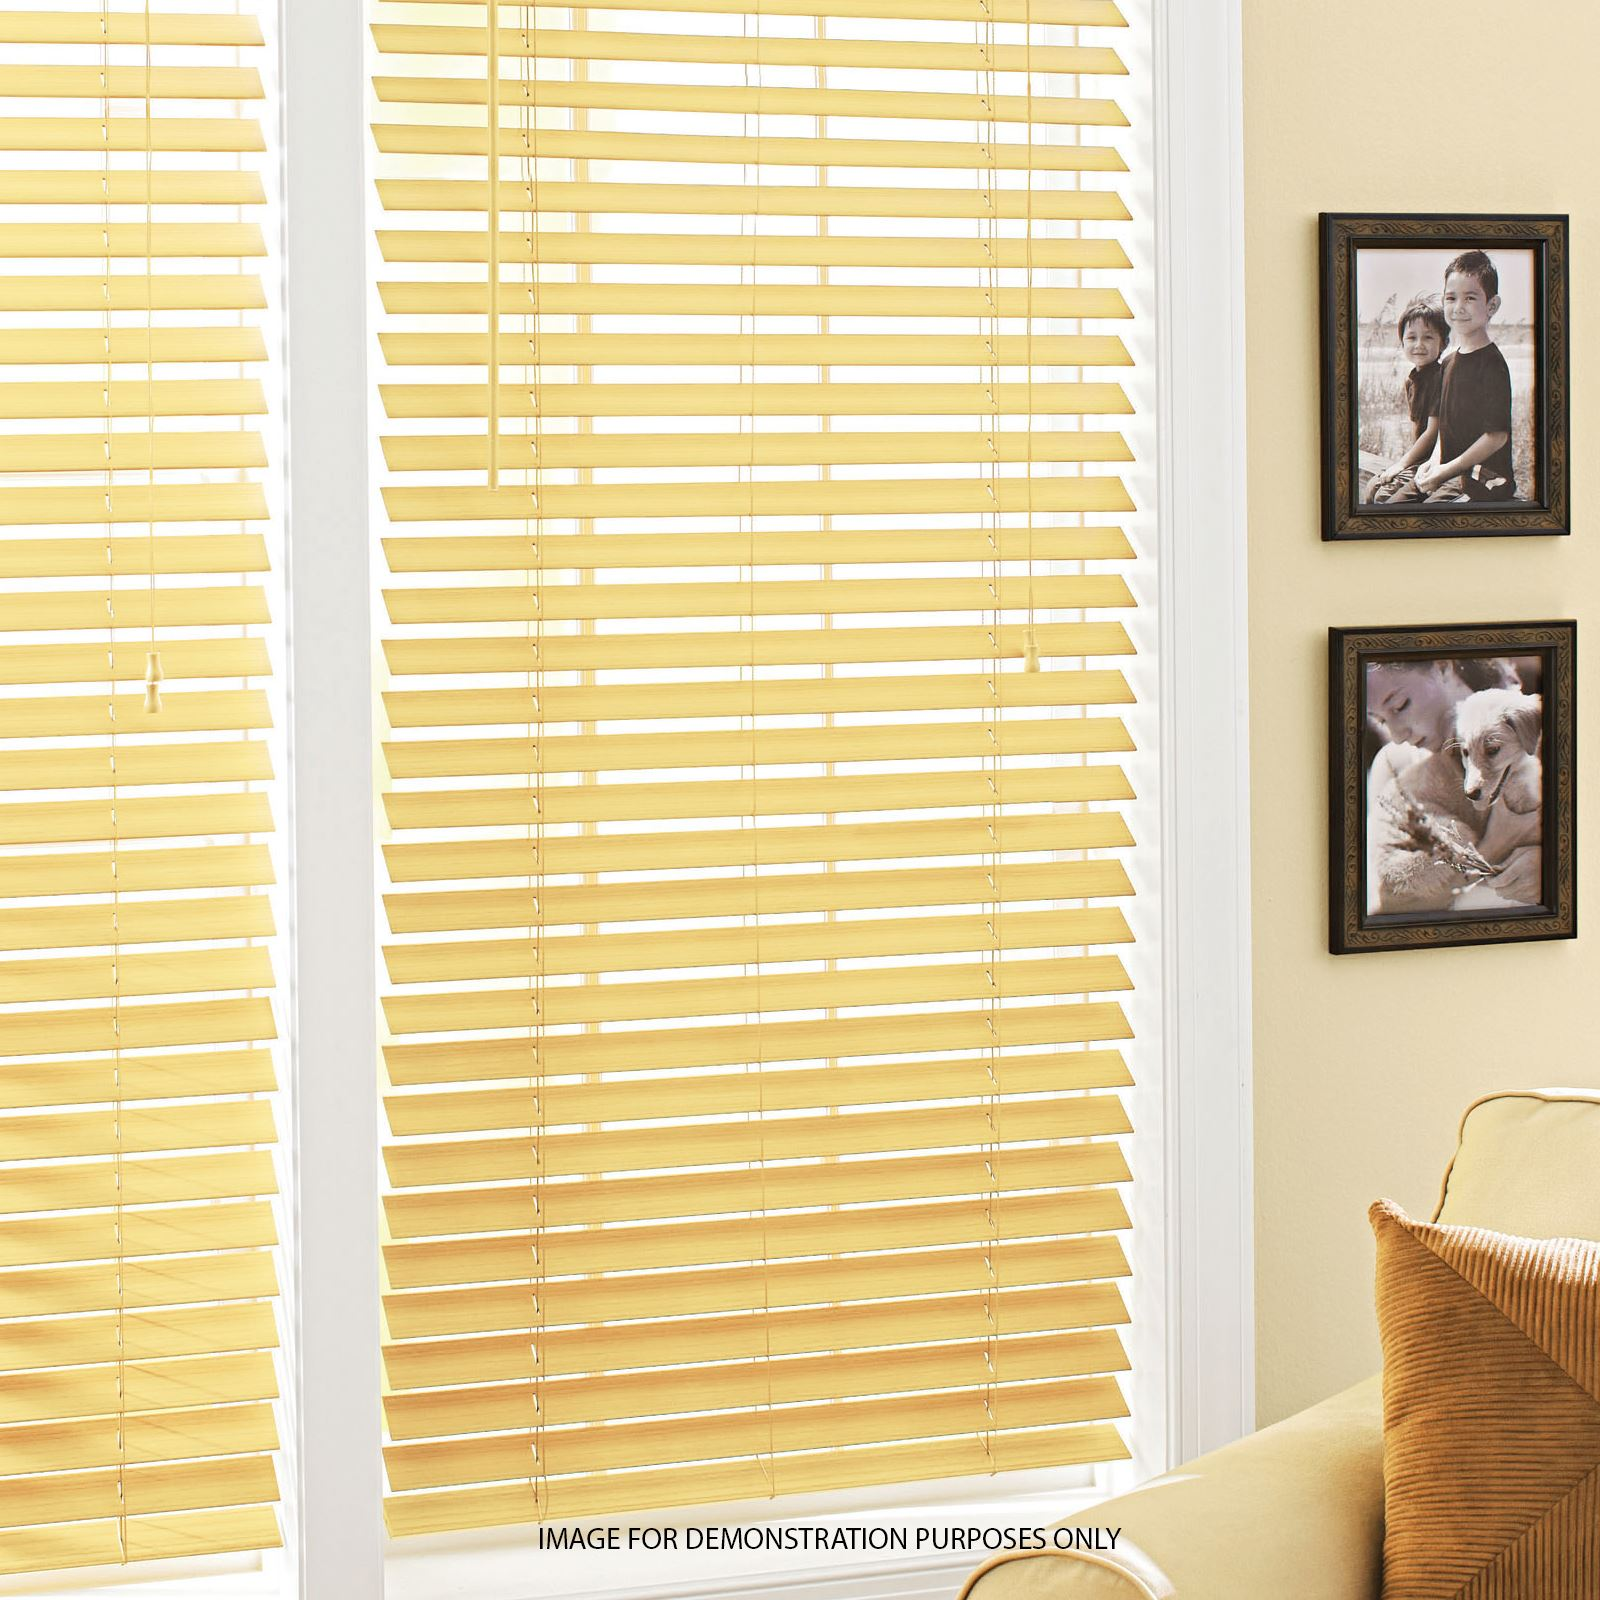 Pvc Venetian Blinds Easy to Fit Trimable Home Office Window VENETIAN Blind Sizes